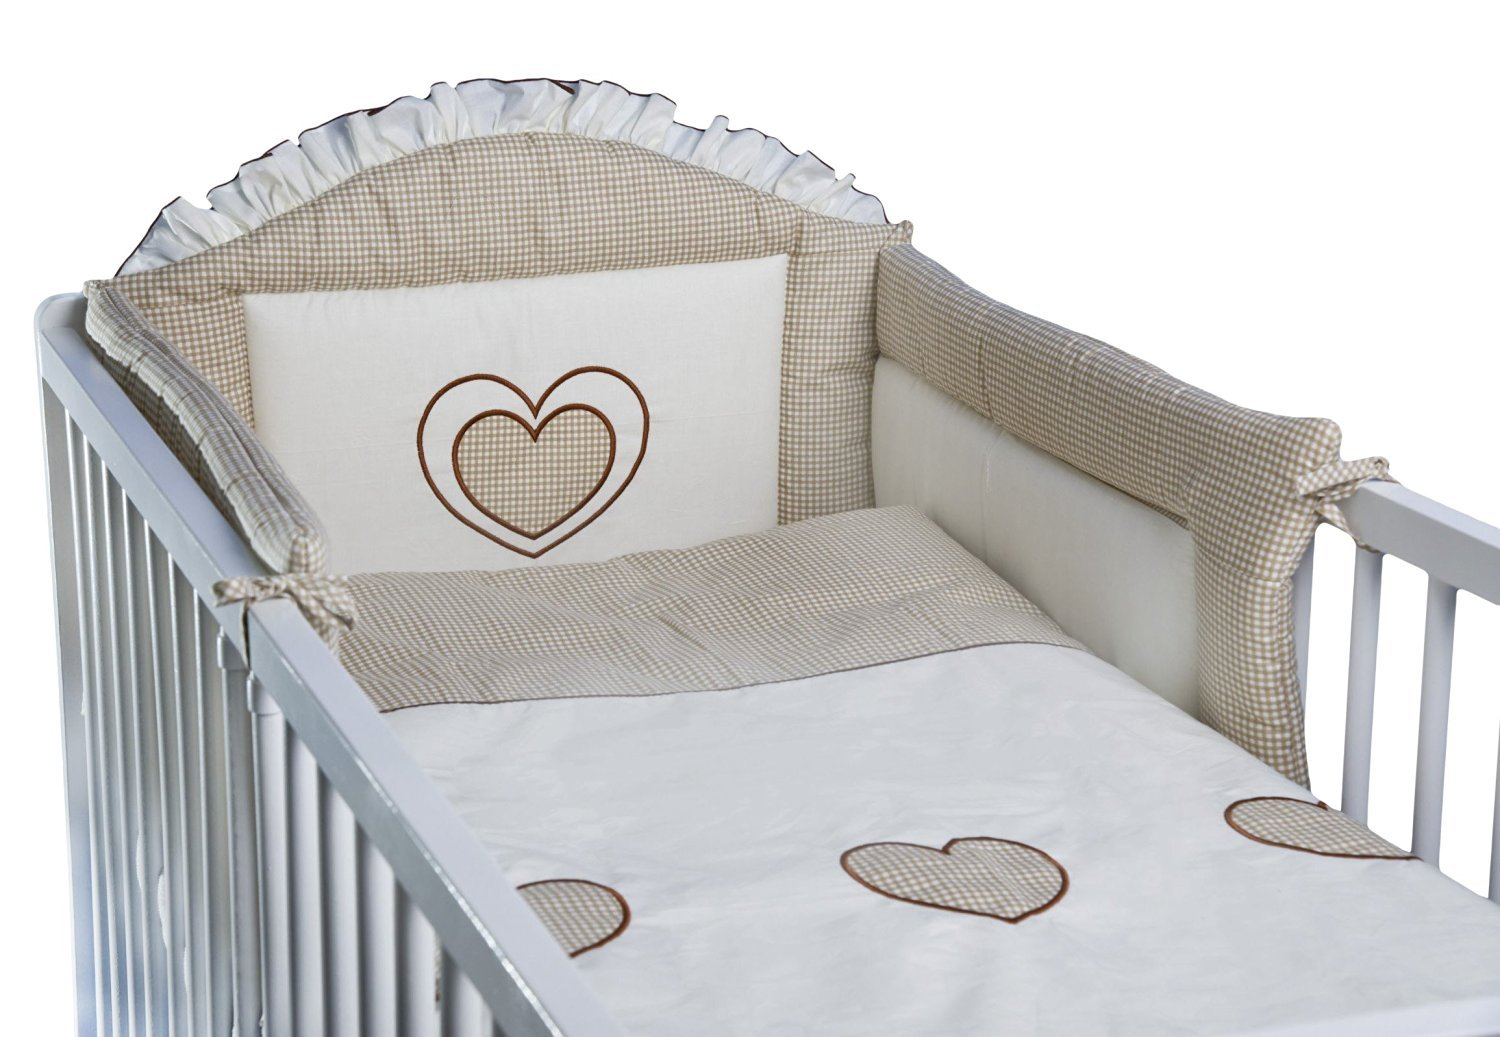 3 Piece Baby Bedding Set (To Fit Cot or Cot Bed) Embroidered - Hearts (COT BED 140 x 70cm, White) Babycomfort